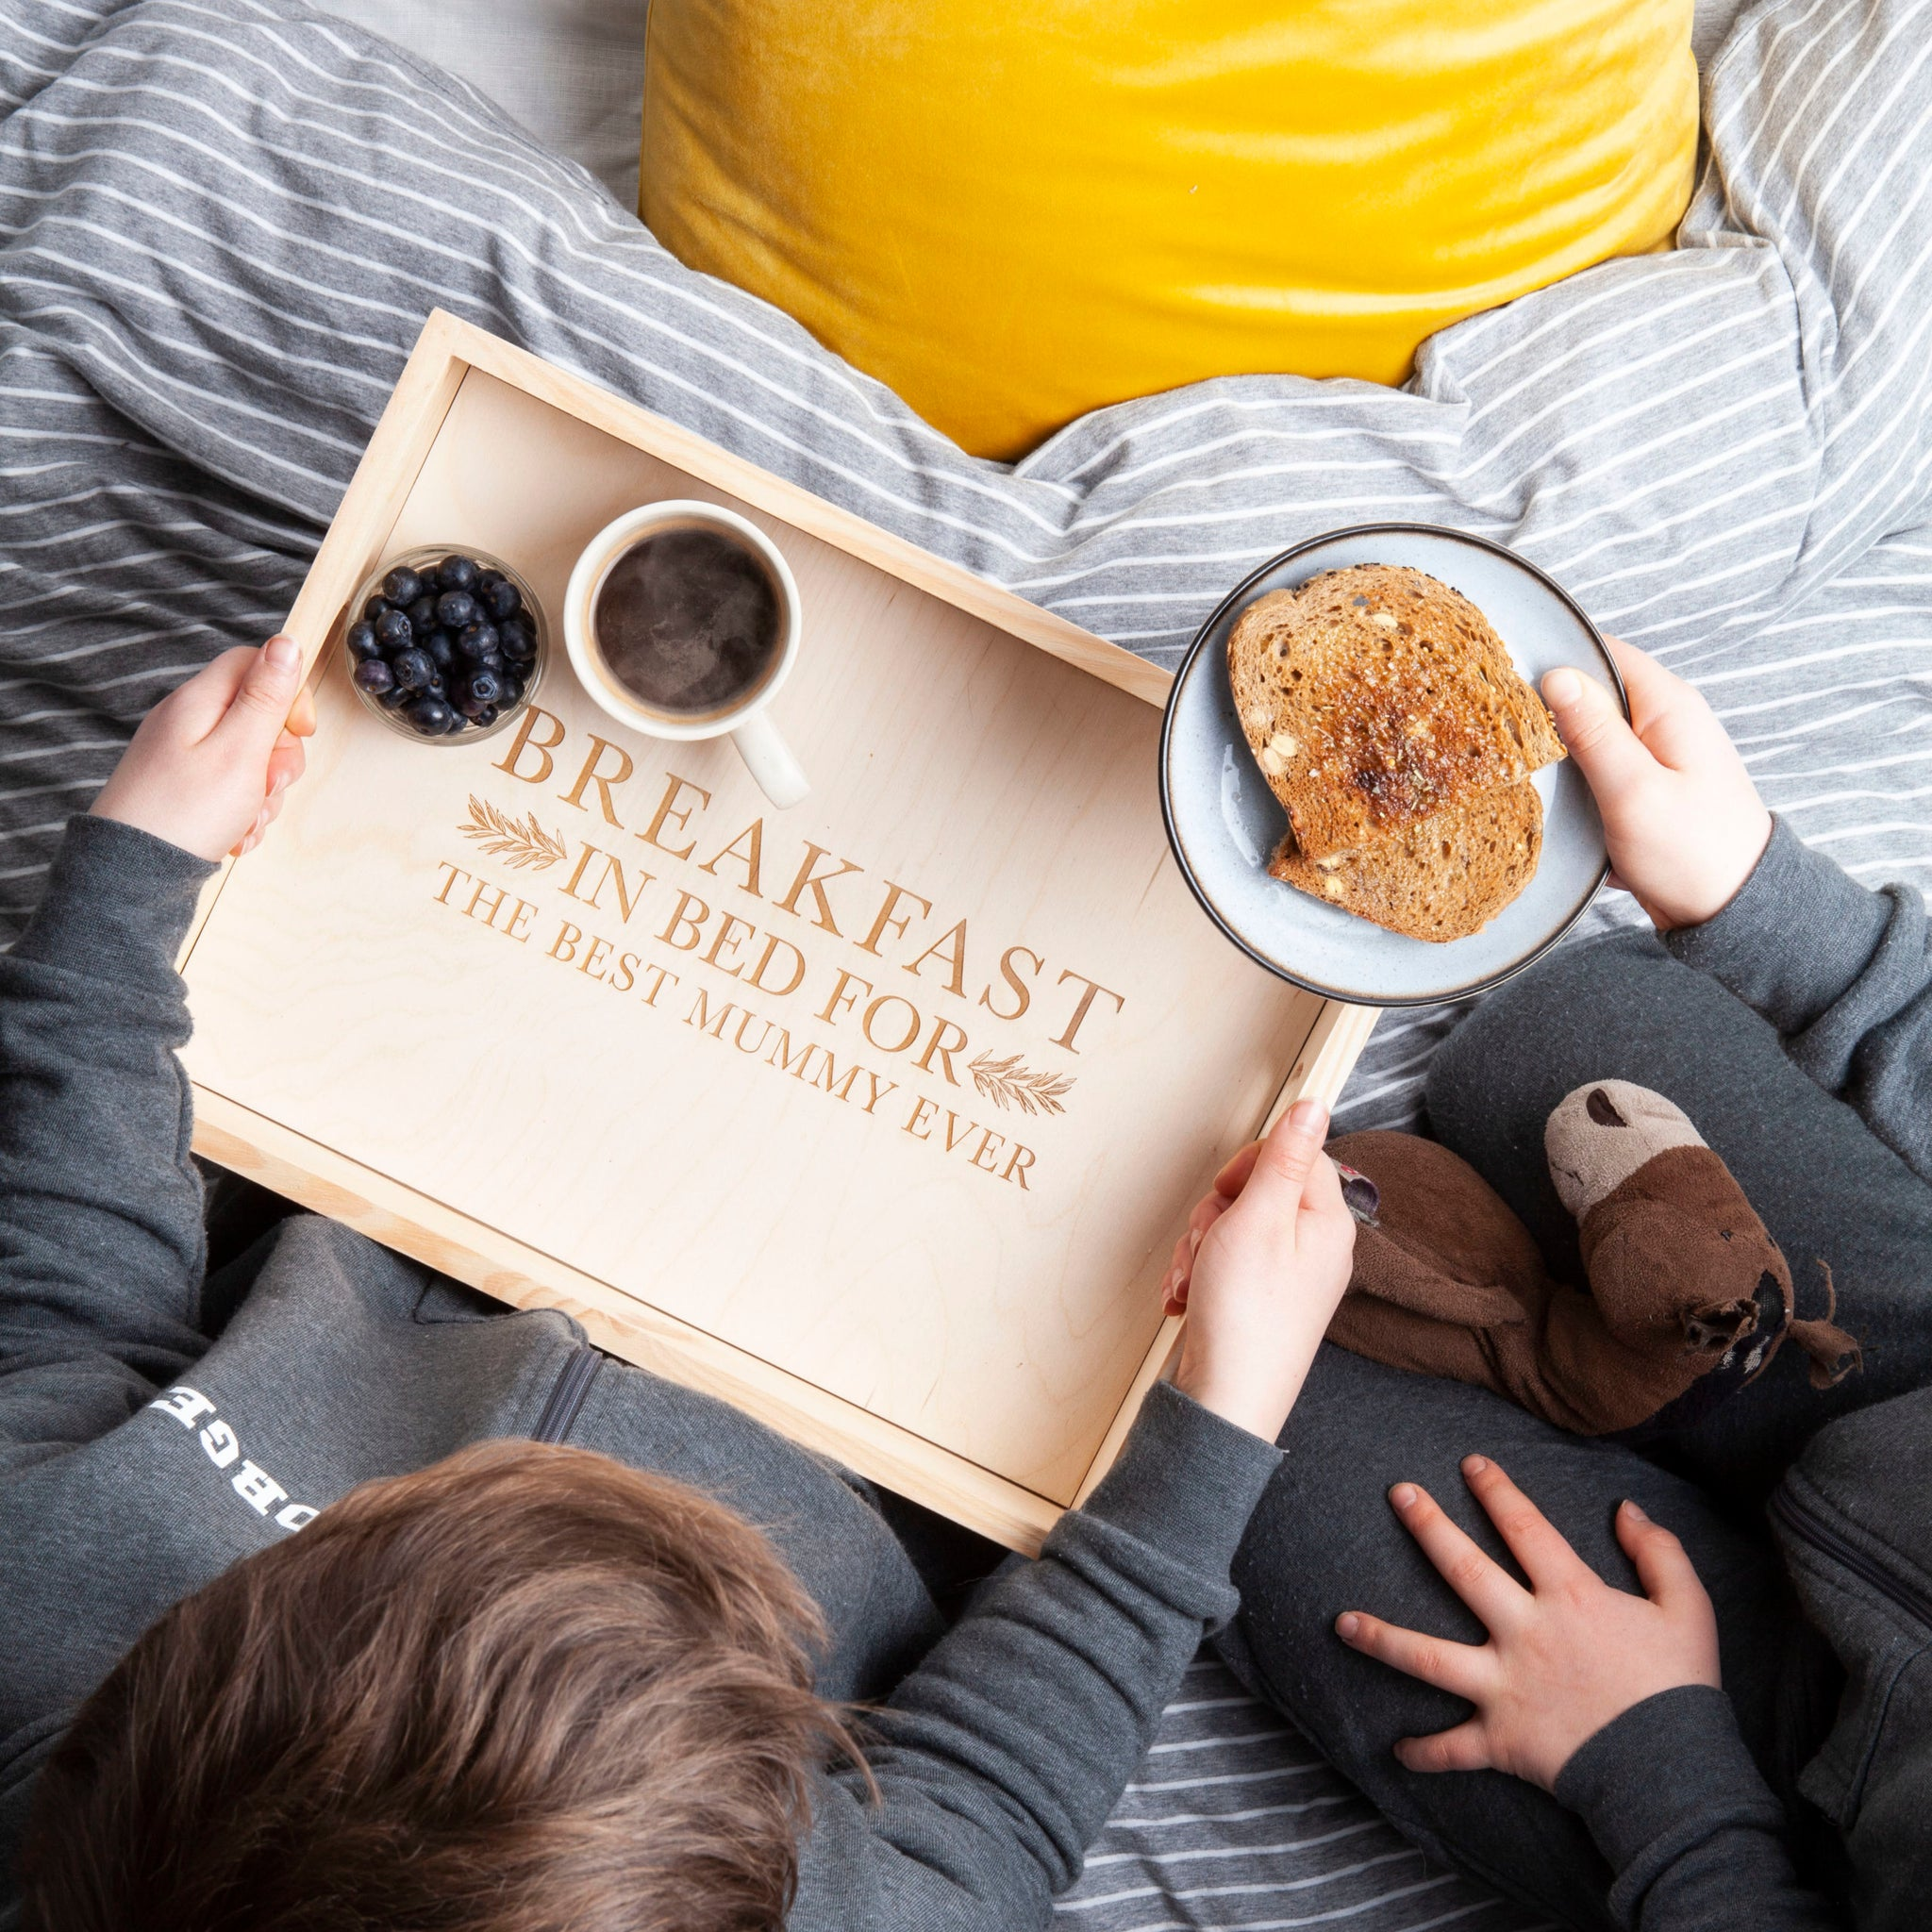 Bespoke_&_Oak Perosnliased Breakfast Tray